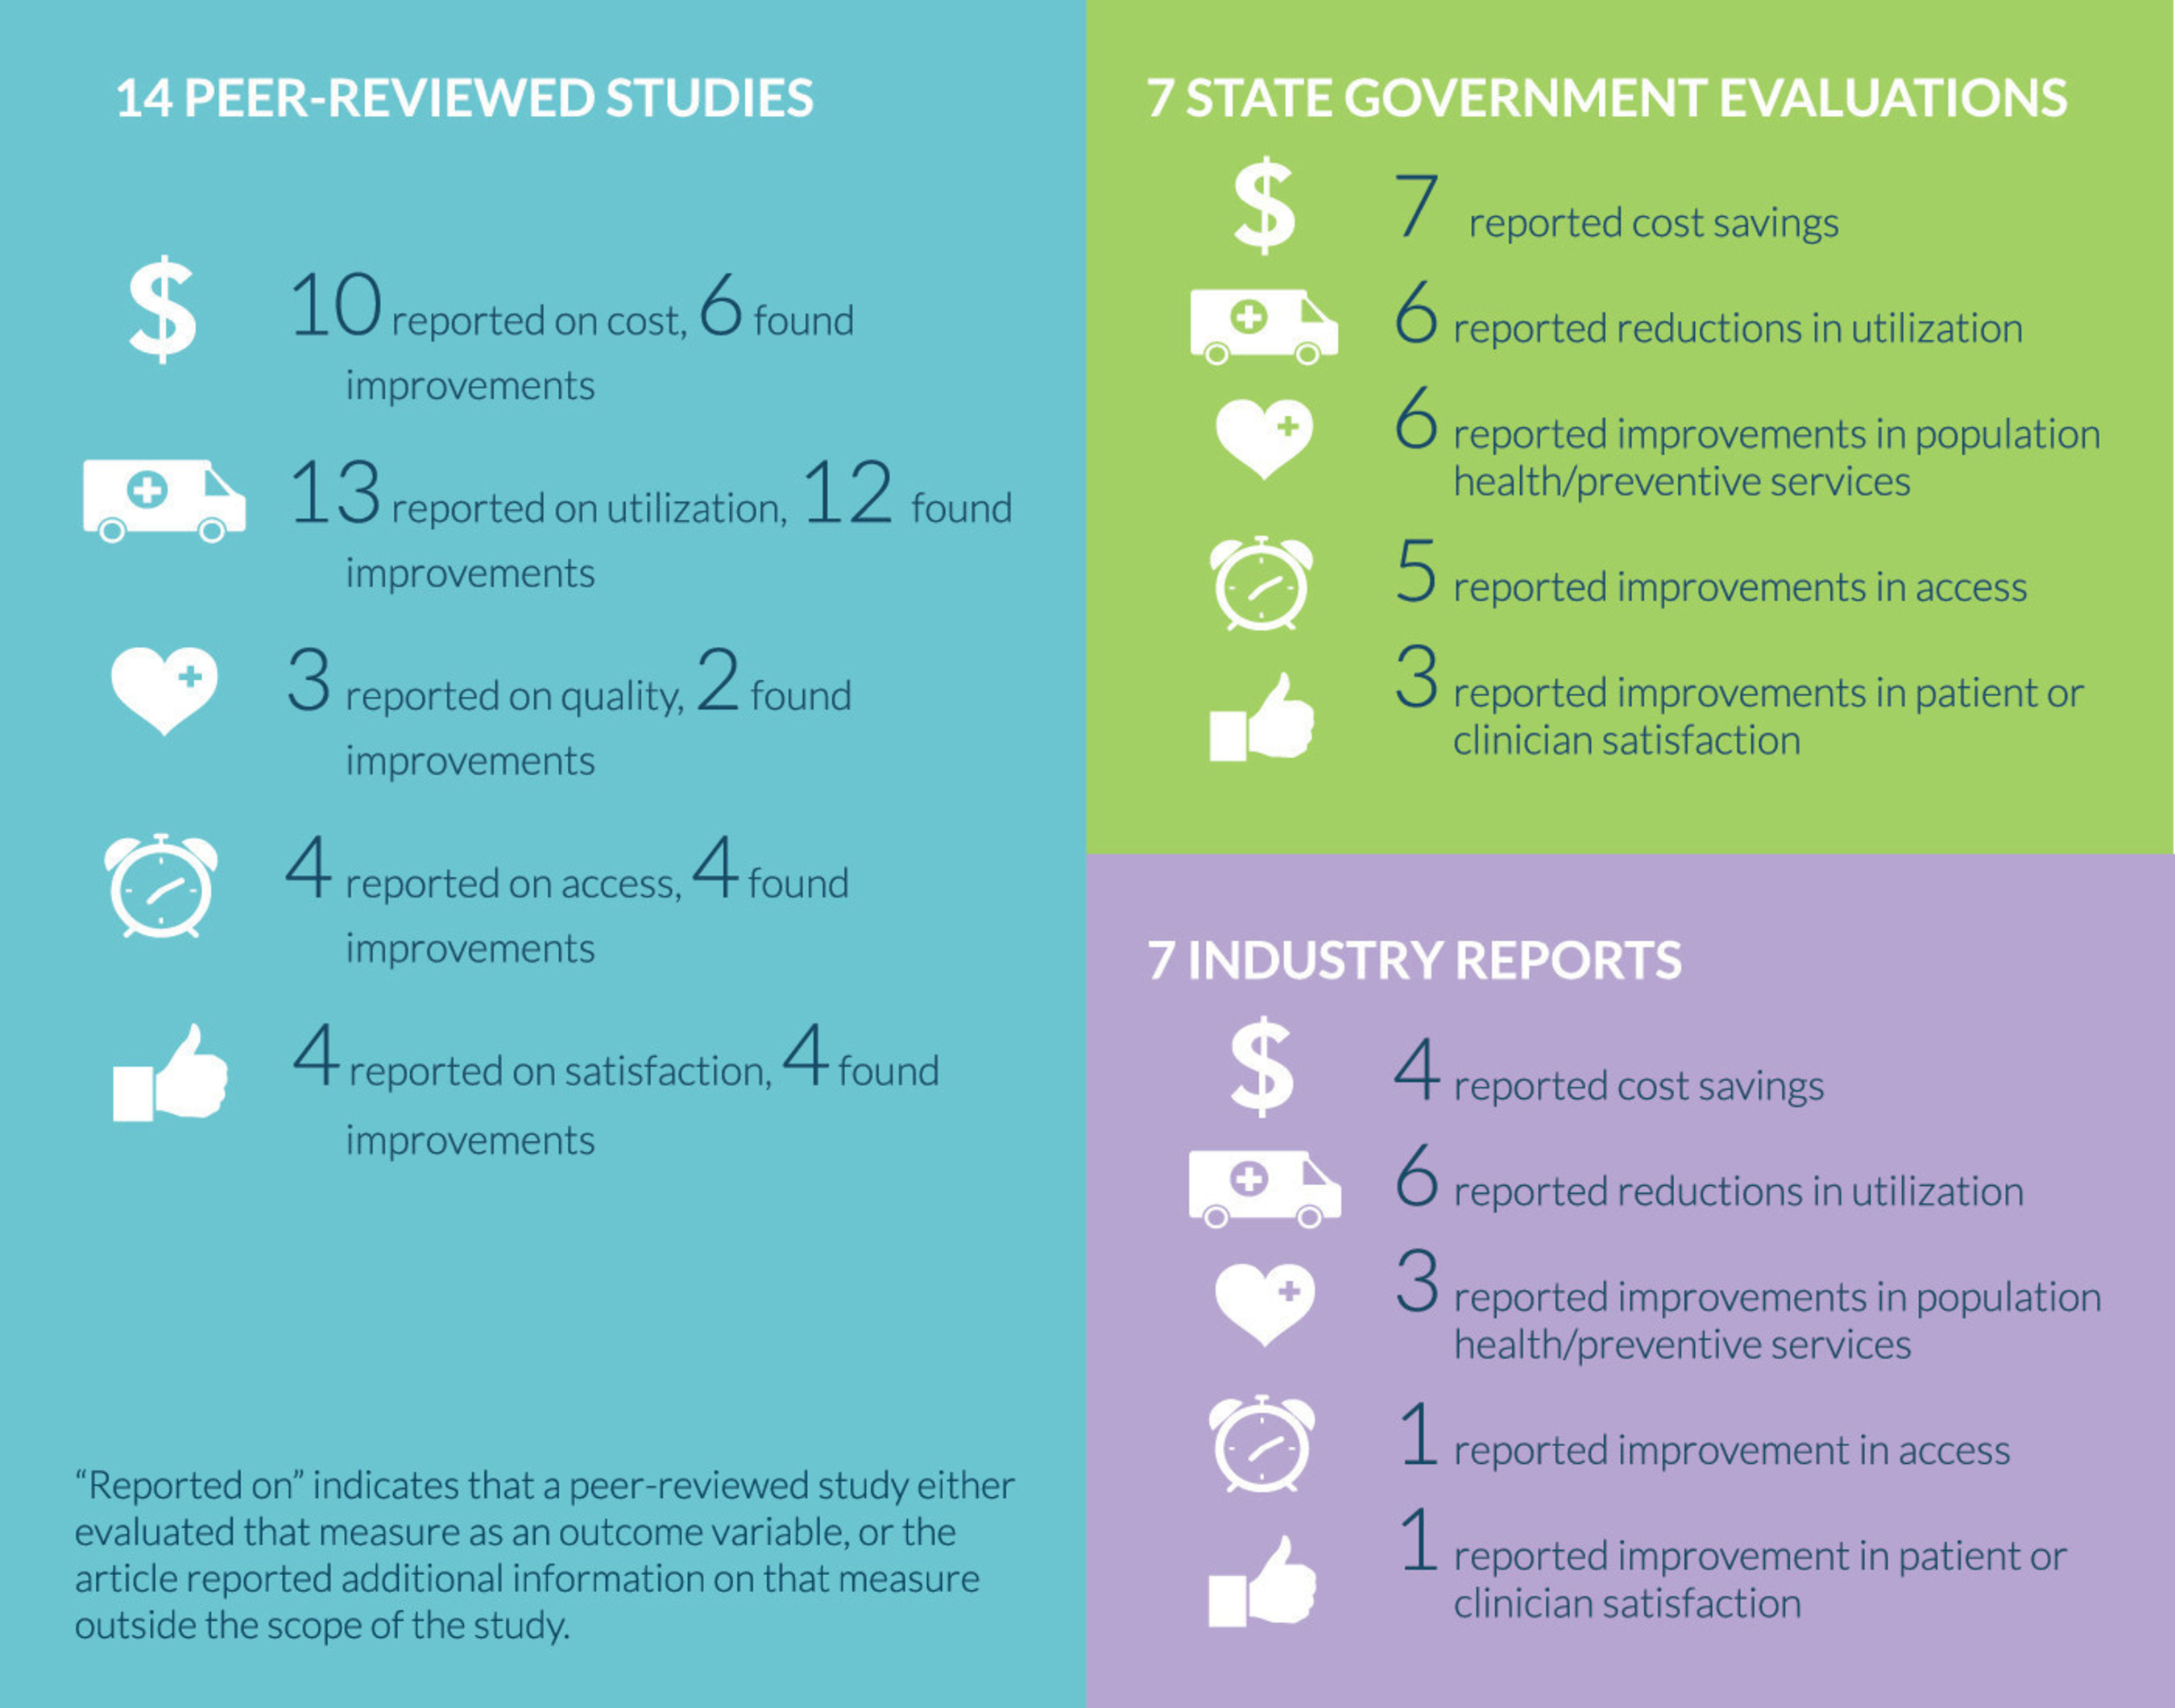 Overview of the PCMH Evidence from the Patient-Centered Primary Care Collaborative's new report titled, The Patient-Centered Medical Home's Impact on Cost and Quality, Annual Review of Evidence, 2013-2014.